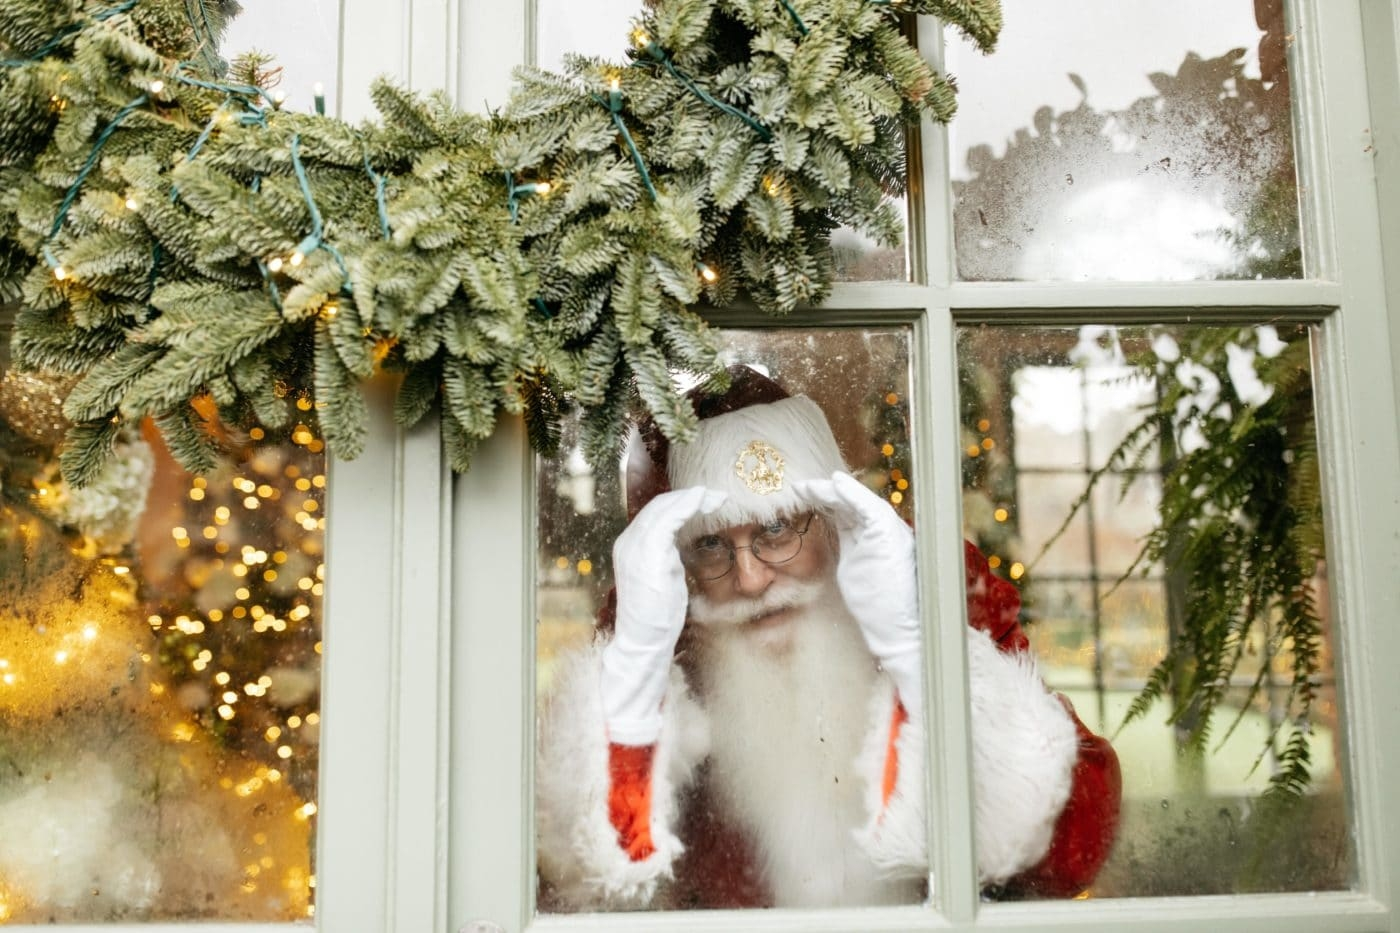 Christmas Parafe Redwood City 2021 Home For The Holidays Our Picks For Seasonal And Safety Conscious Festivities News Palo Alto Online